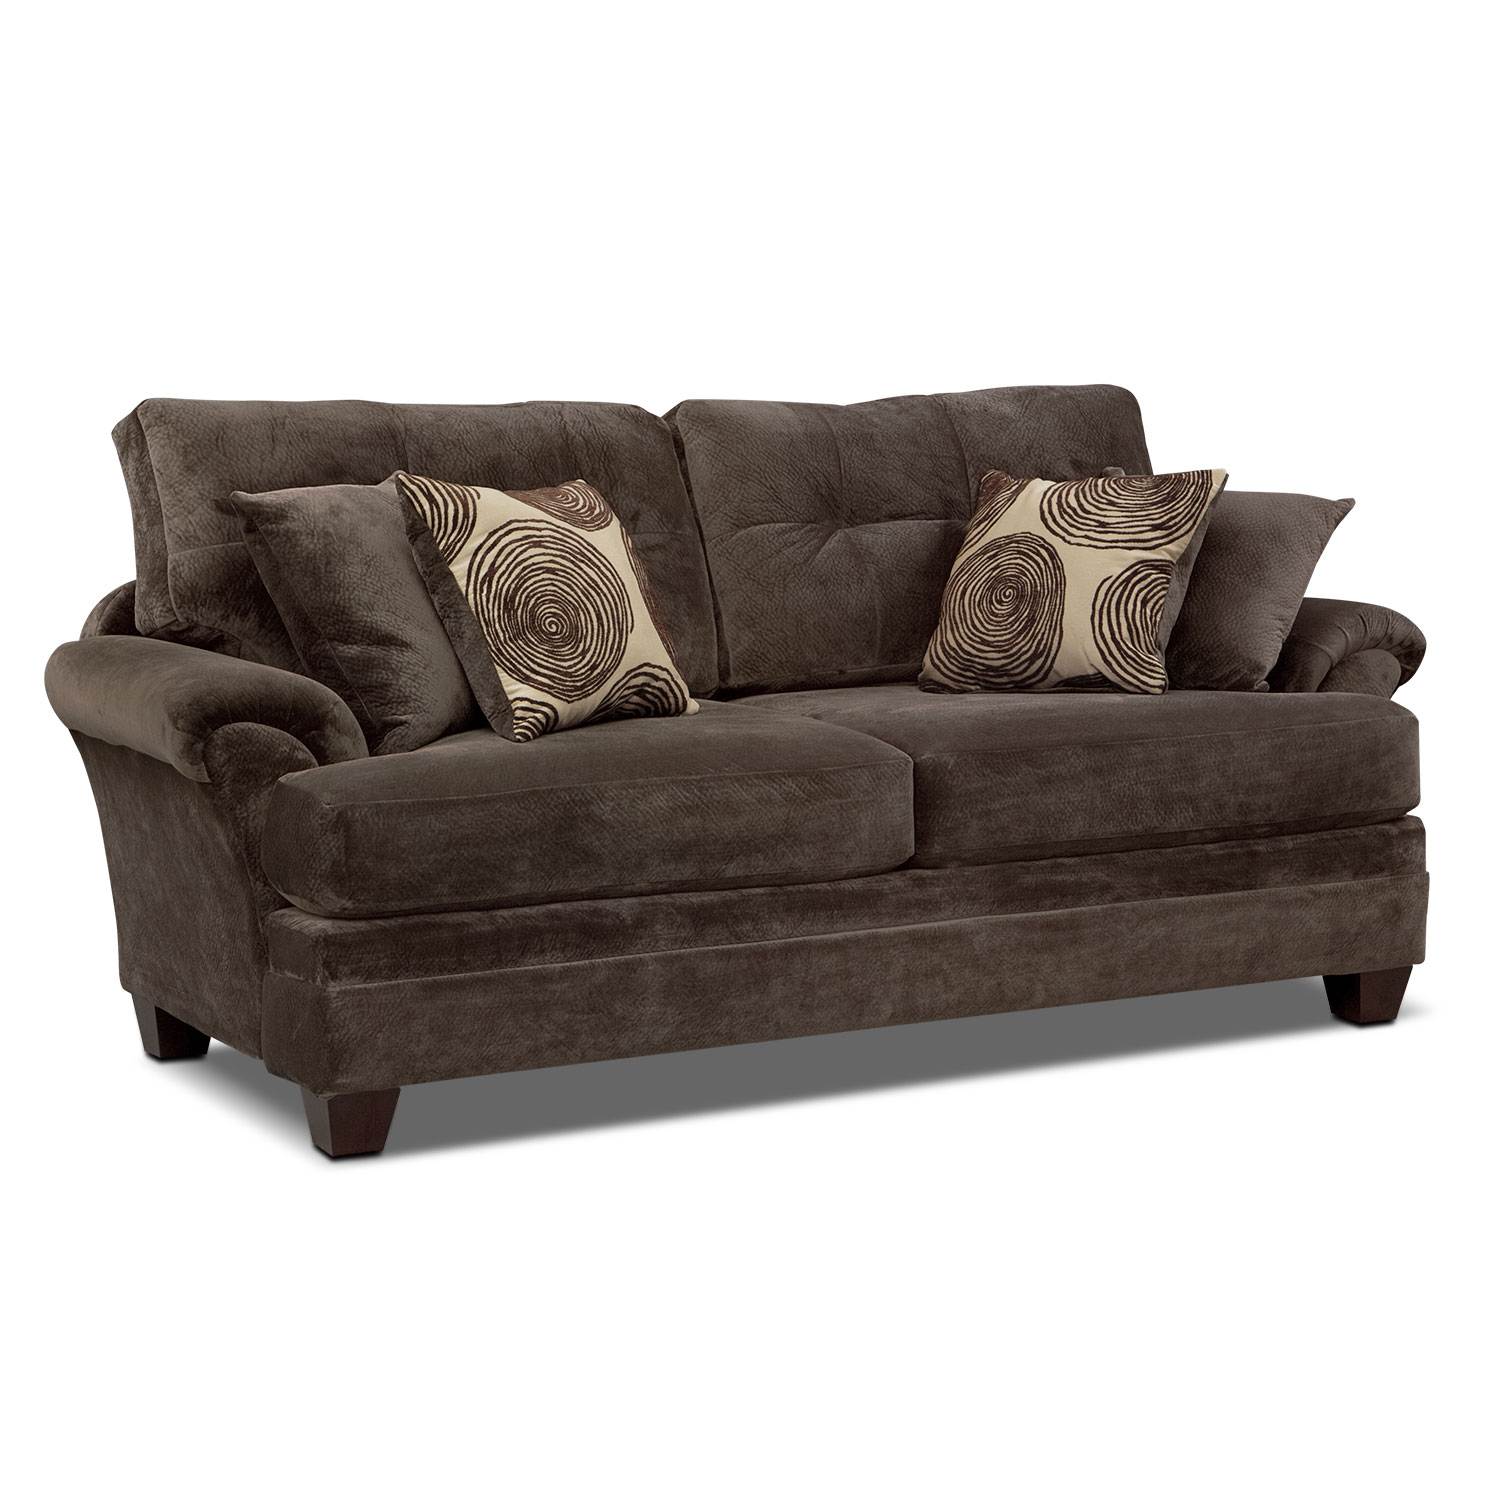 Cordelle Sofa - Chocolate